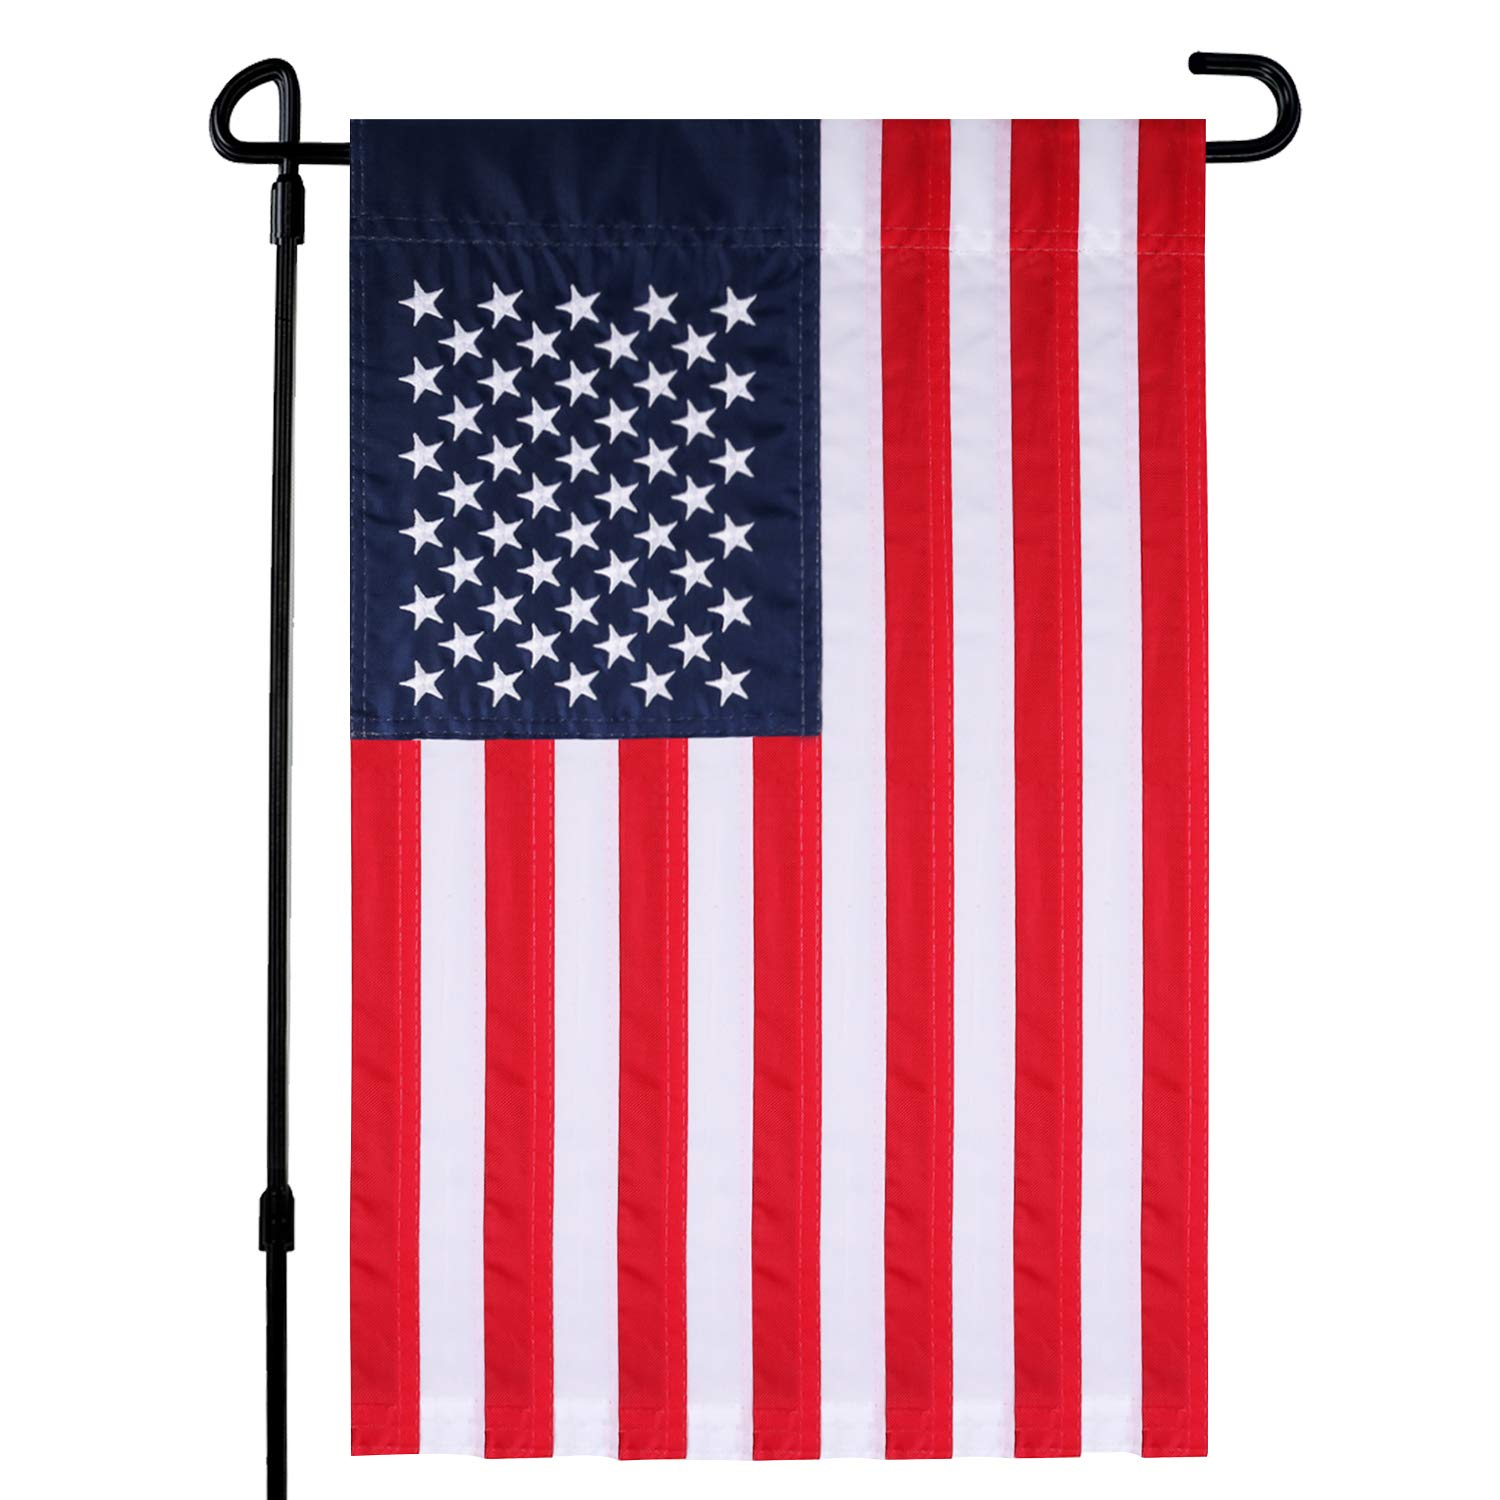 HOOSUN USA Garden Flag, American Garden Flag Embroidered Stars Classic United States Garden Flags Sewn Stripes & Double Stitched 18 x 12 Inch (USA-Embroidered Stars Flag)